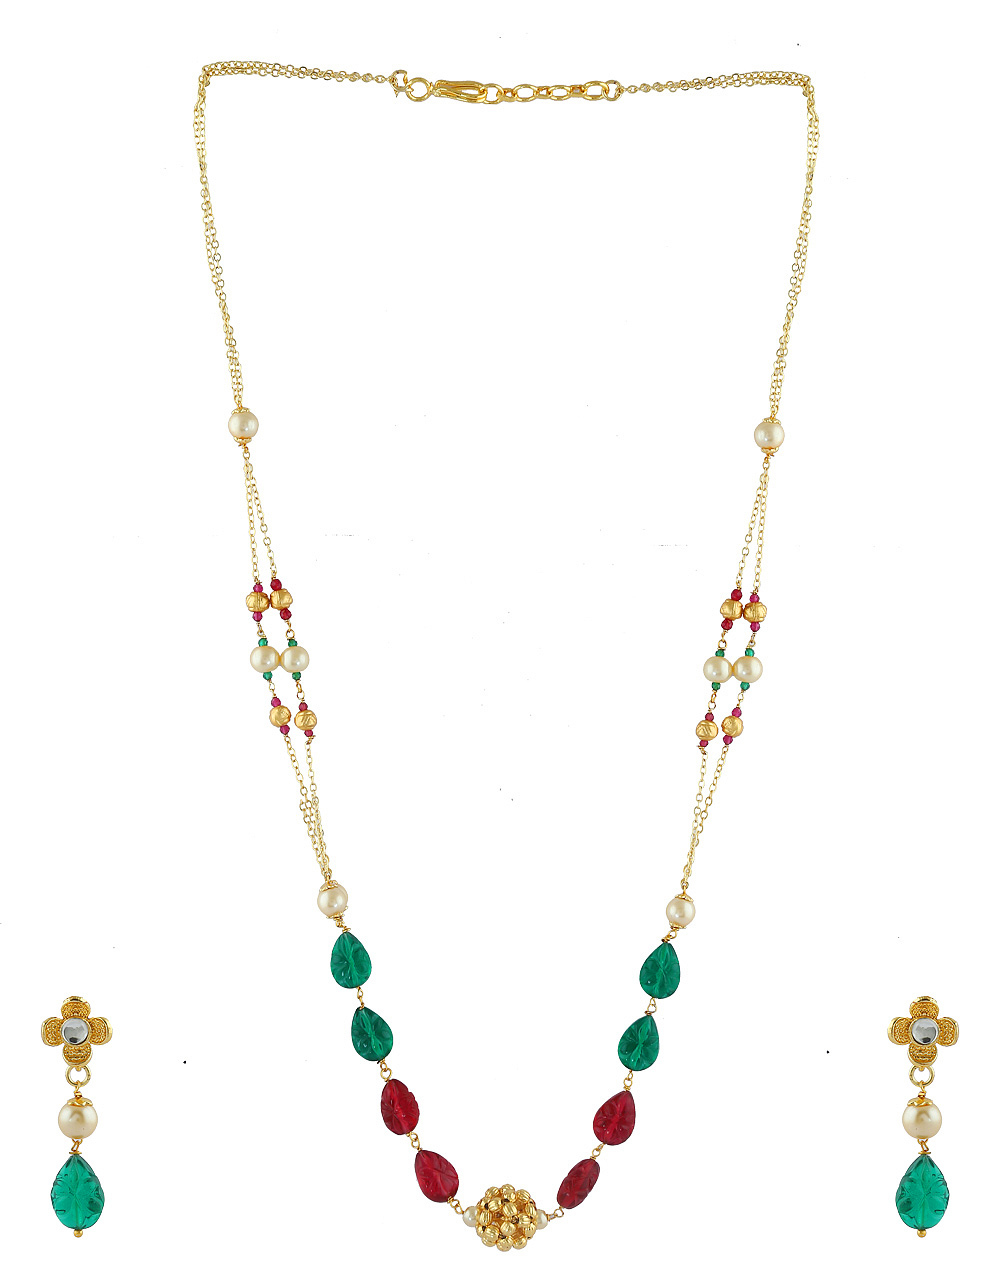 Fancy Gold Finish Mangalsutra Mala Styled With Beads Mangalsutra For Women